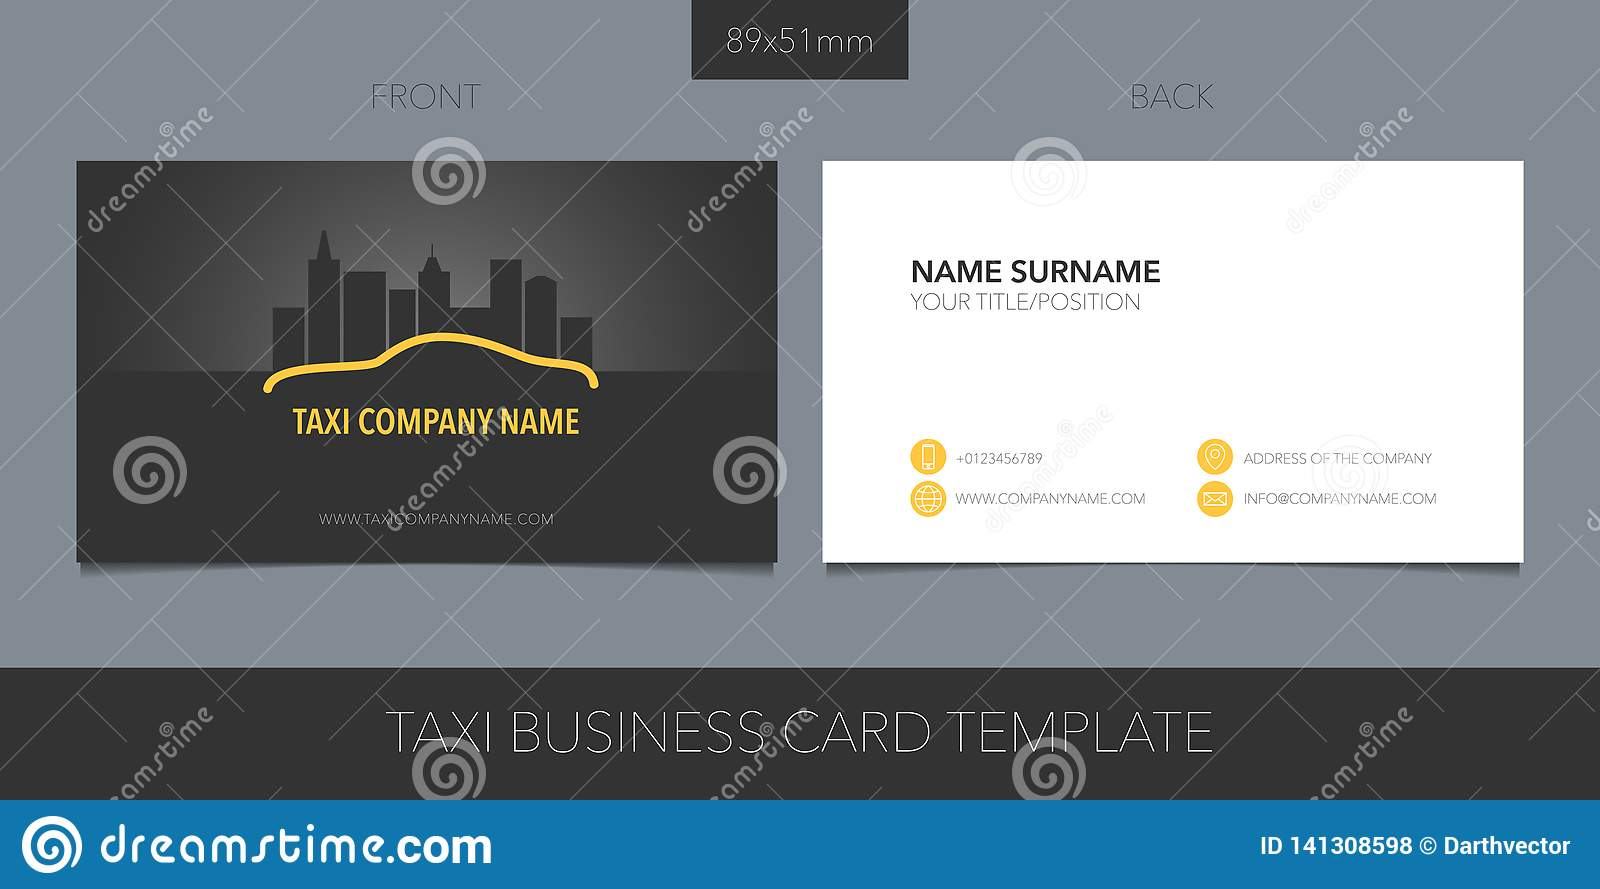 PrintTaxi, cab vector business card layout. Template contact information and logo